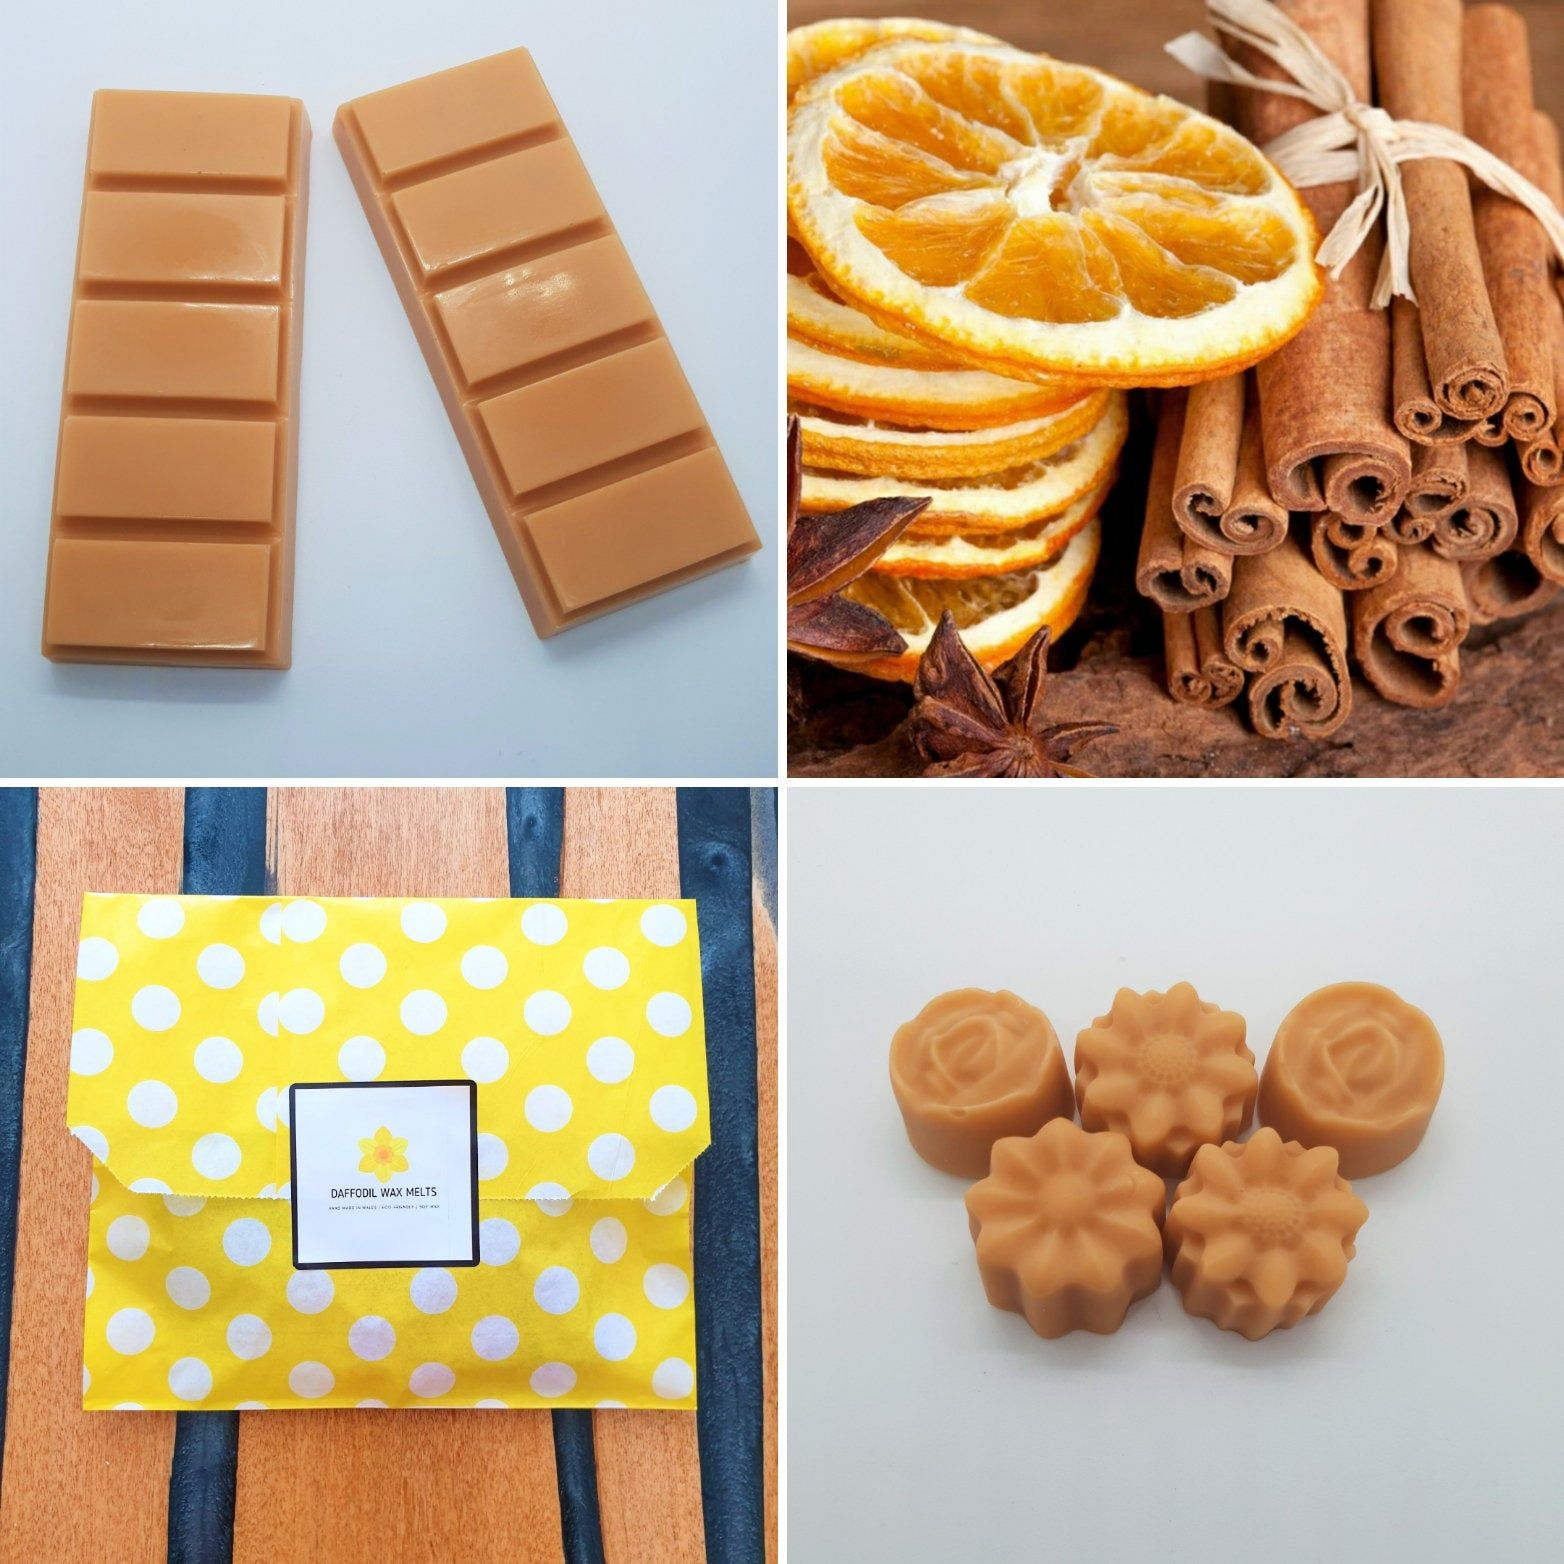 Premium Quality Cinnamon Orange Wax Melts Highly Scented Eco Soy Wax Handmade With Love !